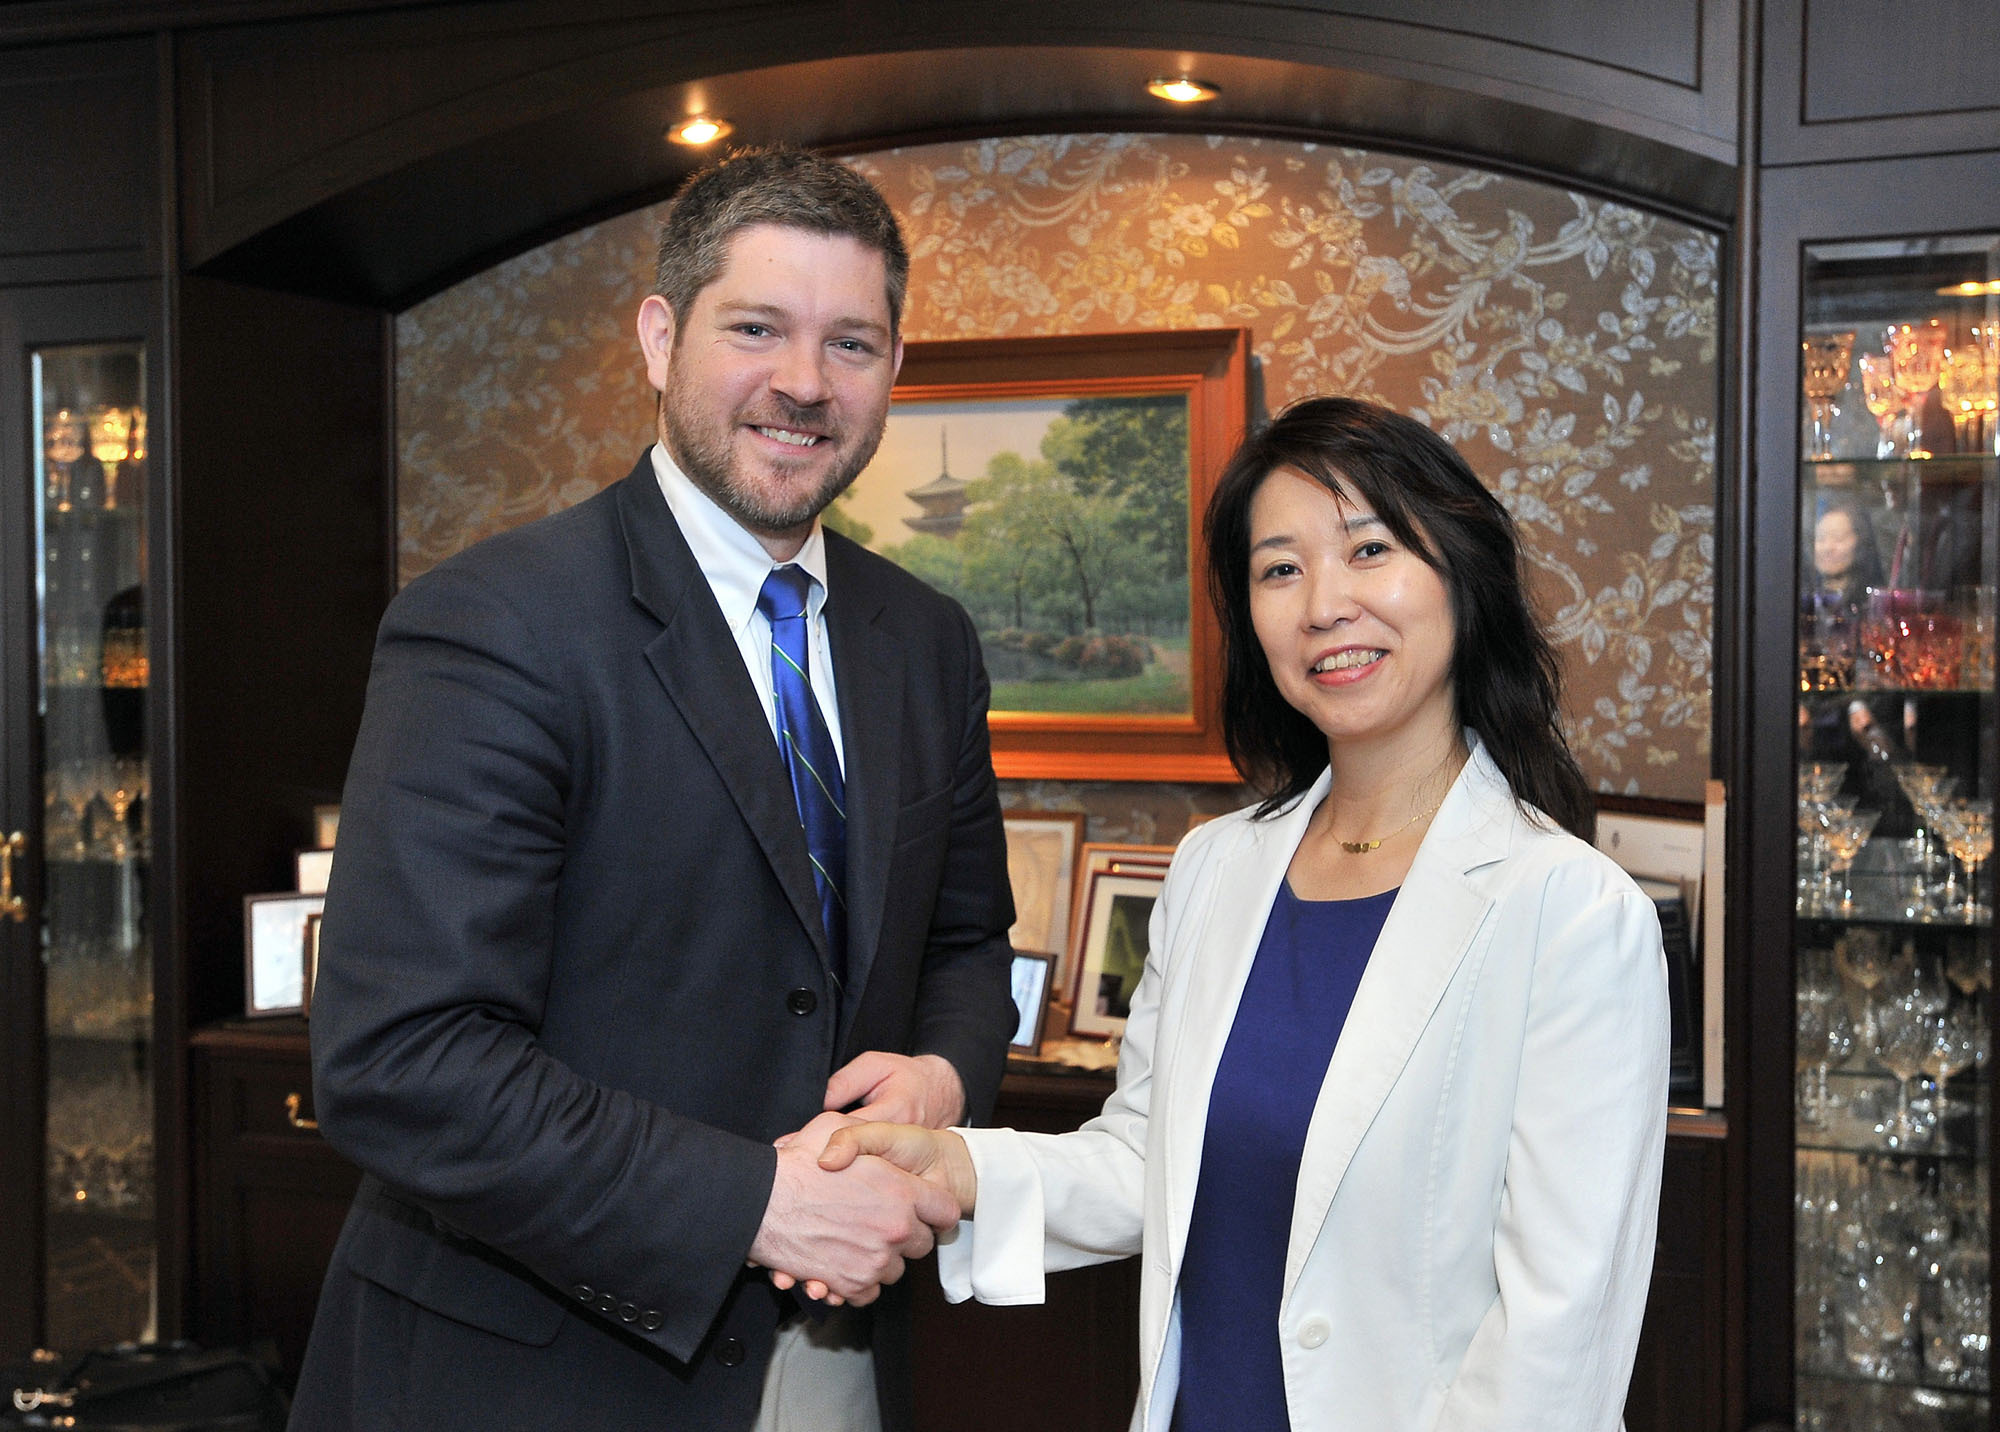 Sam Potolicchio, director of Global and Custom Education at the McCourt School of Public Policy at Georgetown University, meets Japan Times Managing Editor Sayuri Daimon during a courtesy visit to the Tokyo office on May 30. |  YOSHIAKI MIURA